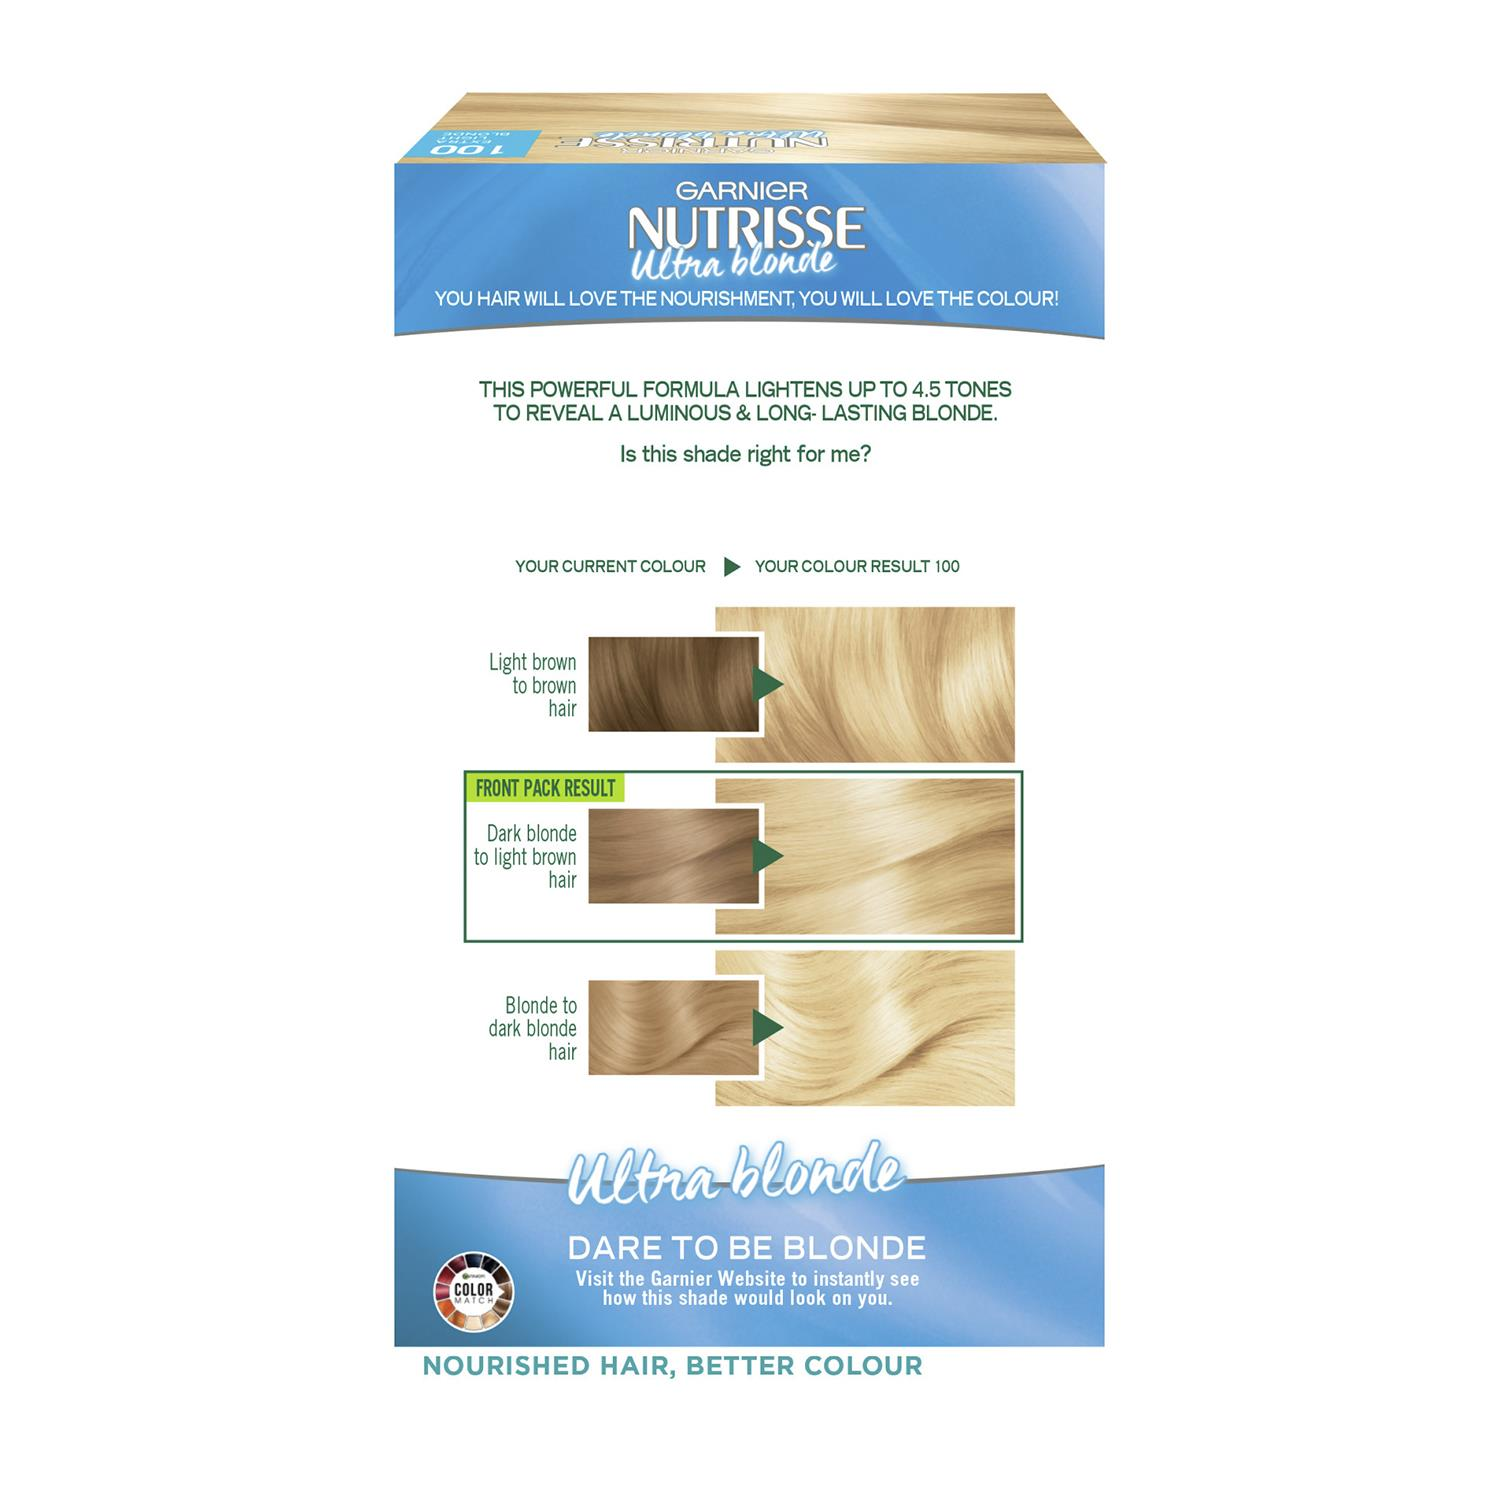 thumbnail 309 - 3 Pack Garnier Nutrisse Permanent Hair Dye With Different Shades